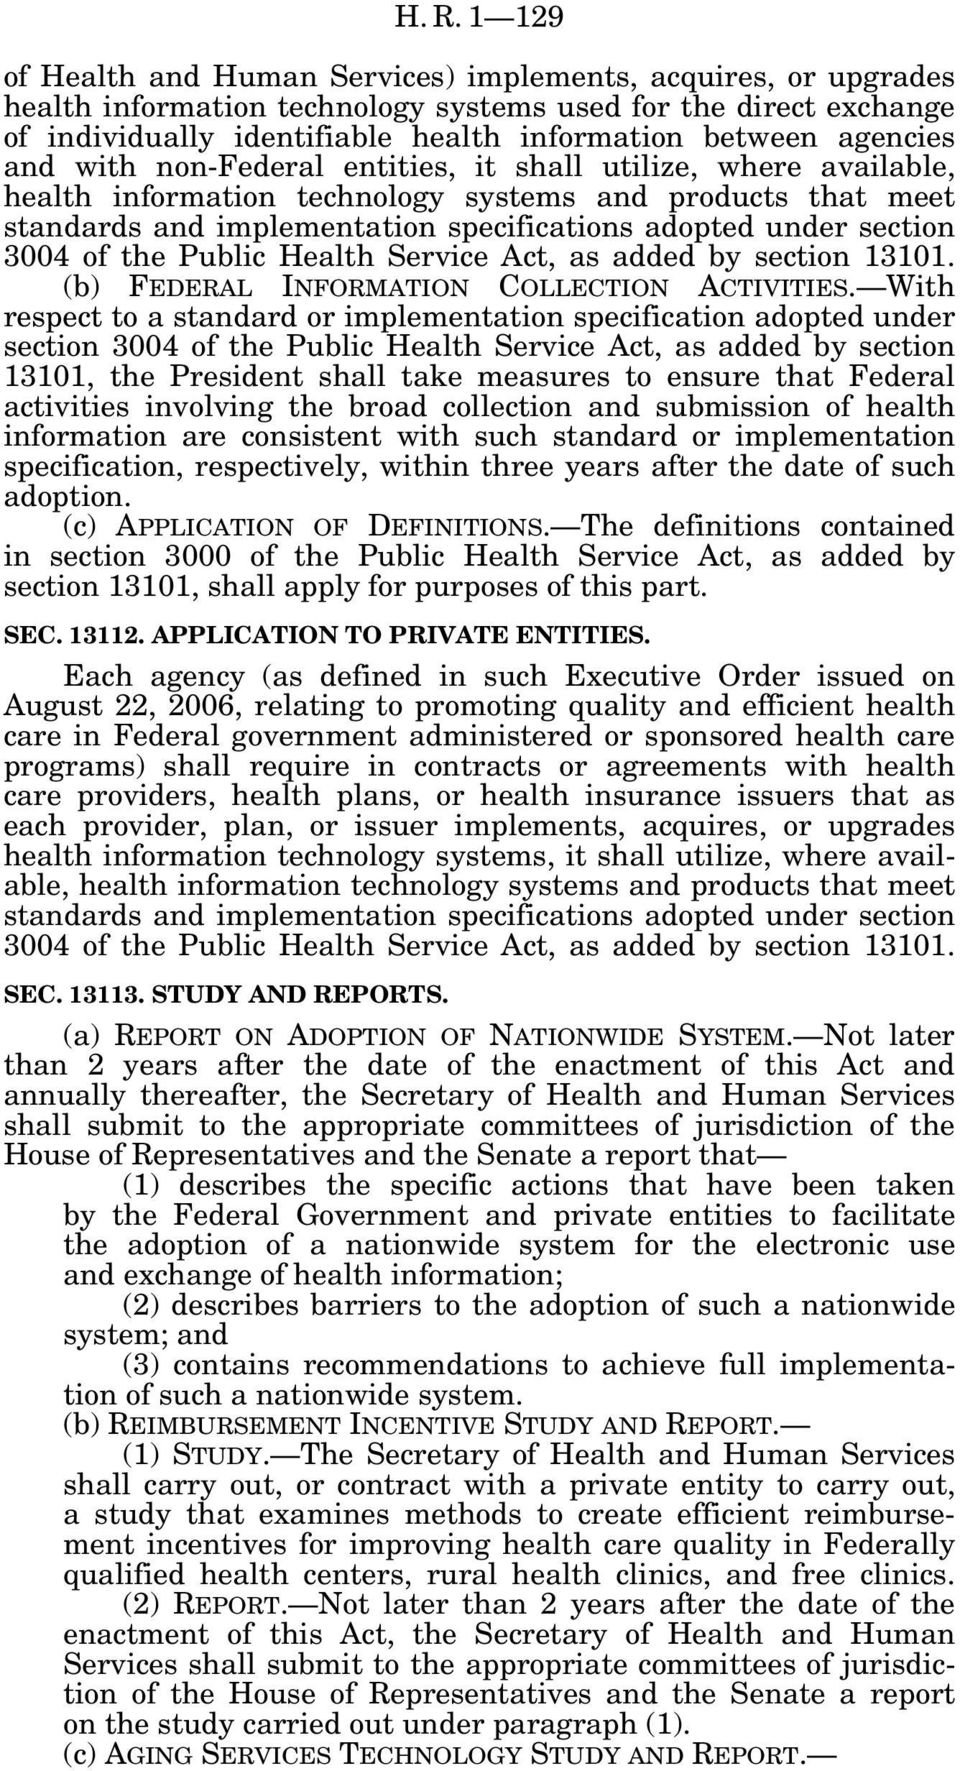 section 3004 of the Public Health Service Act, as added by section 13101. (b) FEDERAL INFORMATION COLLECTION ACTIVITIES.